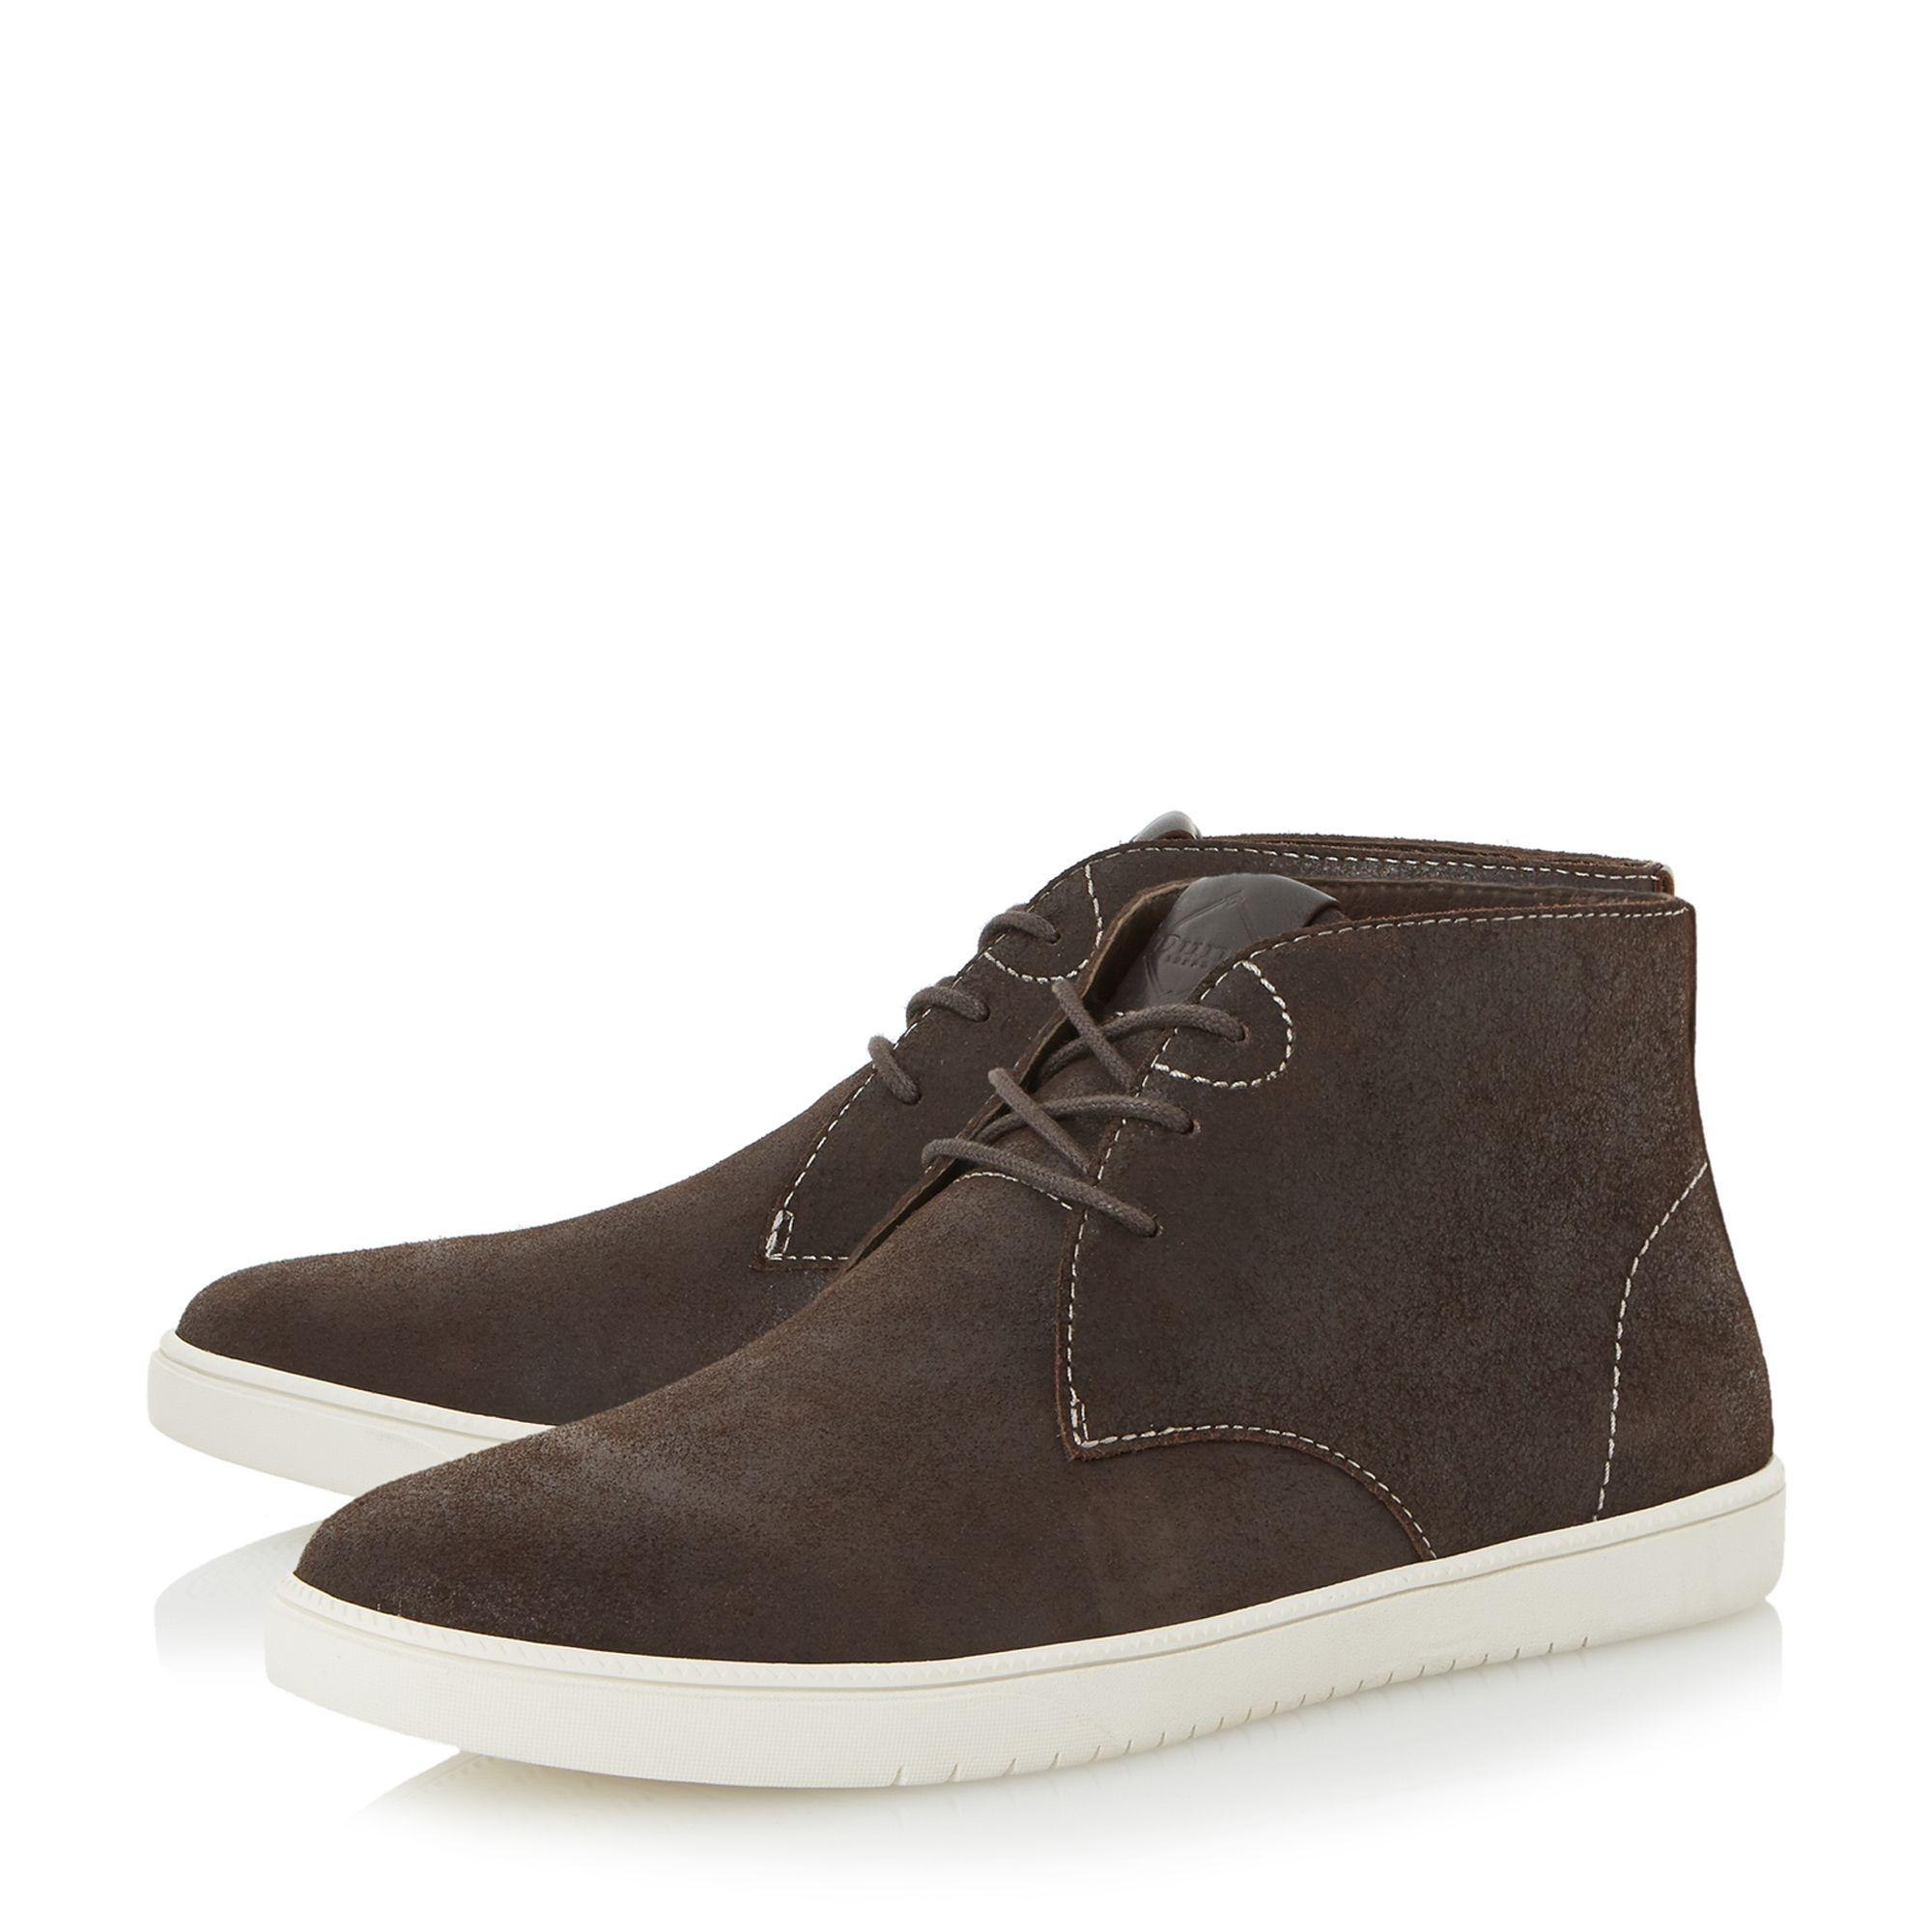 Dune Denim Shoreditch High Top Lace Up Trainers in Brown for Men